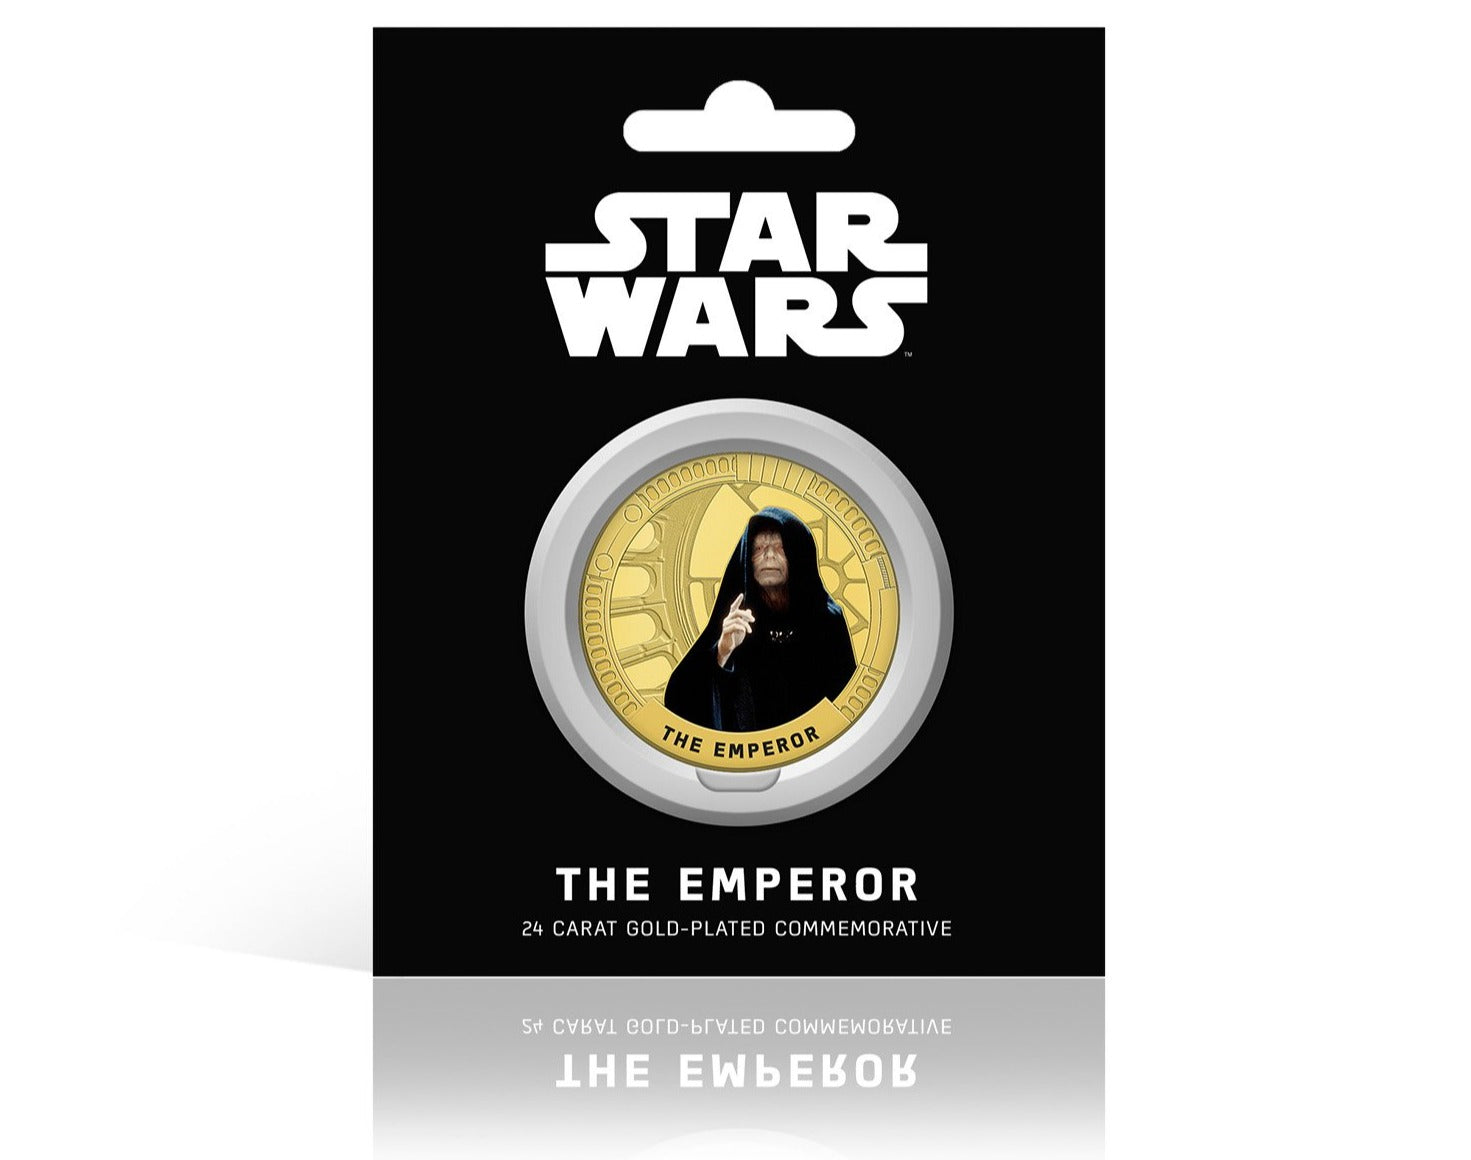 Star Wars Trilogía Original Episodios IV - VI - The Emperor - Moneda / Medalla conmemorativa acuñada con baño en Oro 24 quilates y coloreada a 4 colores - 44mm